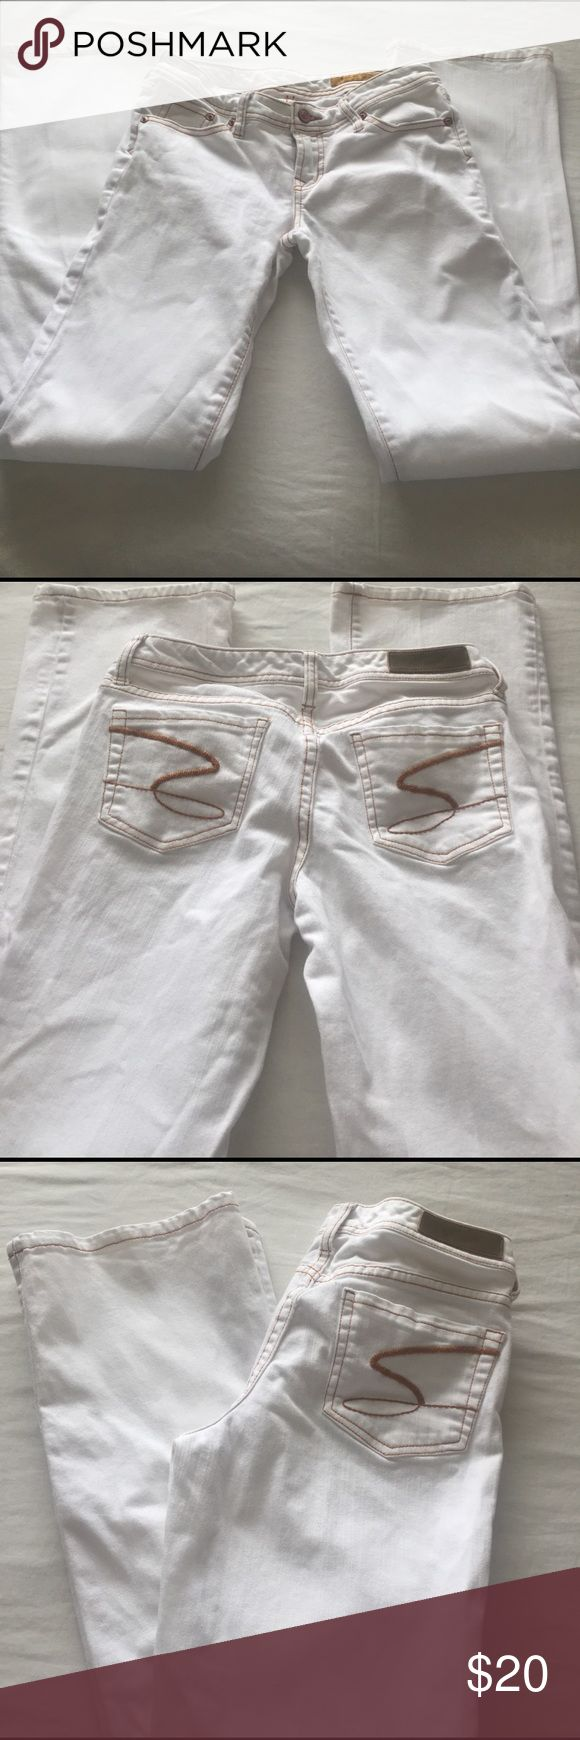 SALE! Seven7 Classic Flare Leg White Jeans White flare leg jeans with tan stitching, inseam 32. Has 3 tiny light dot stains above left knee the size of a pin head, fixable with a bleach pen (show in last photo). Overall these jeans are in good condition. Seven7 Jeans Flare & Wide Leg